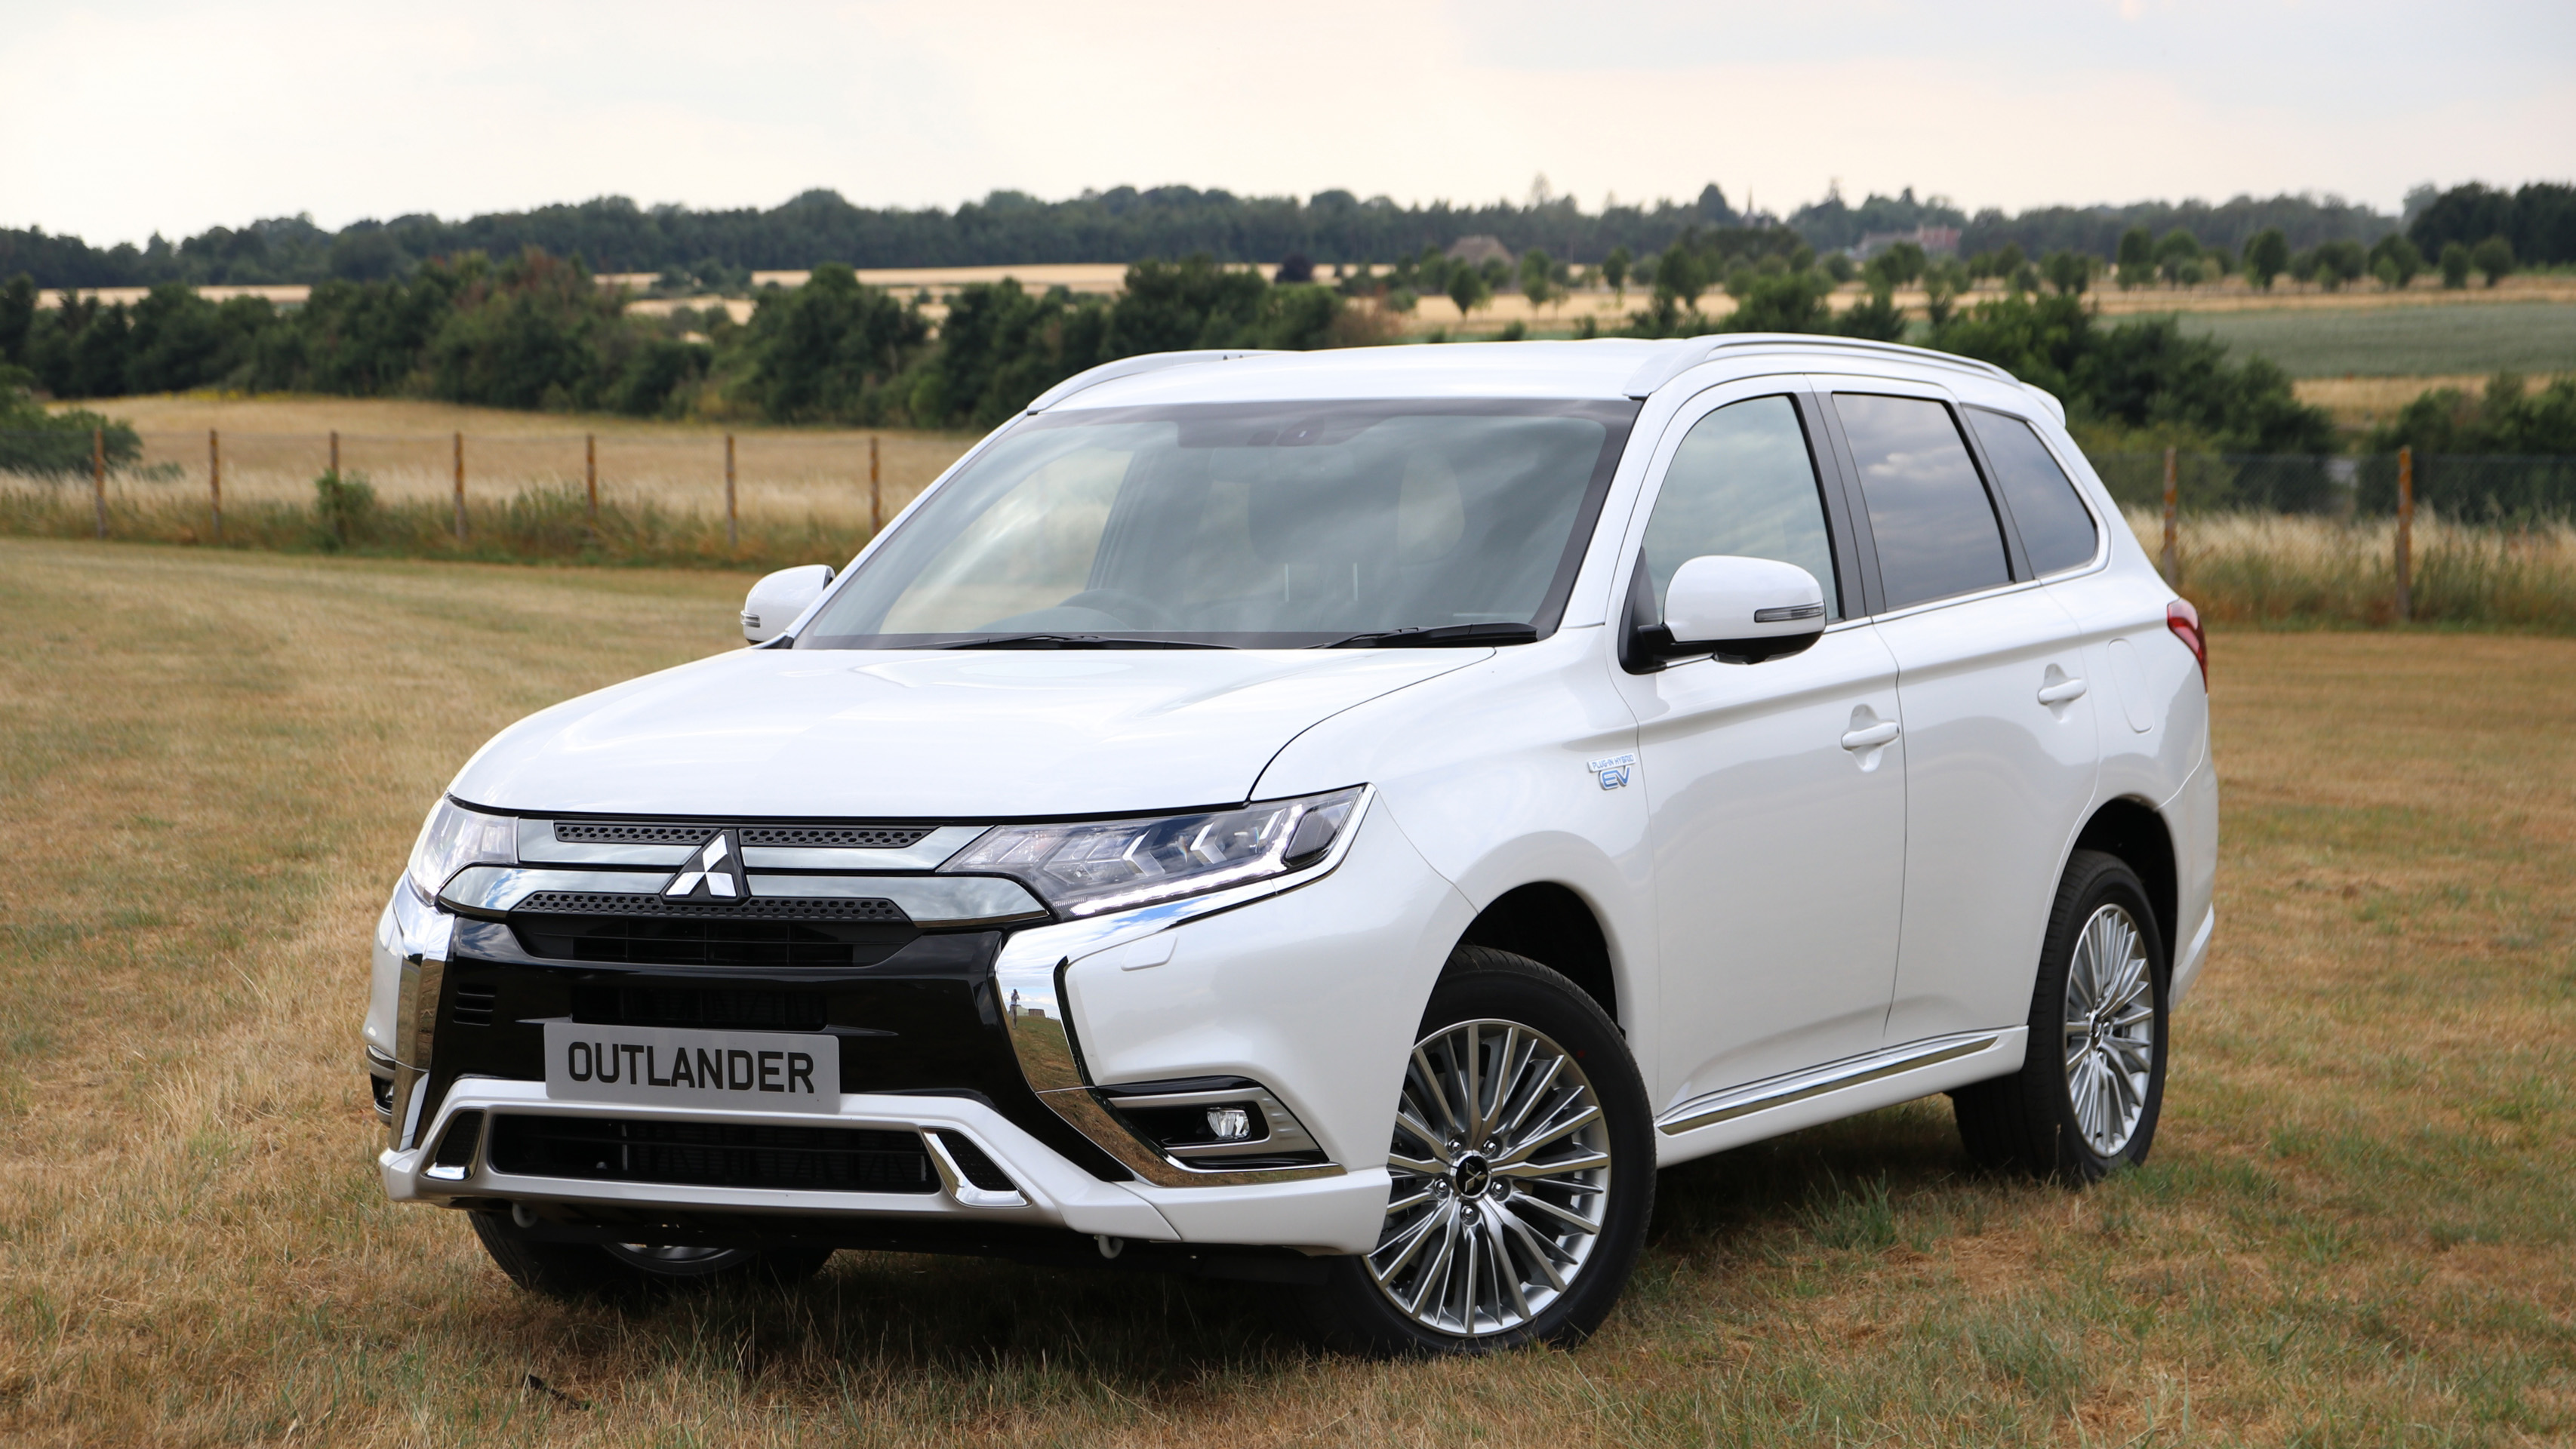 Mitsubishi Outlander Review and Buying Guide: Best Deals and Prices |  BuyaCar